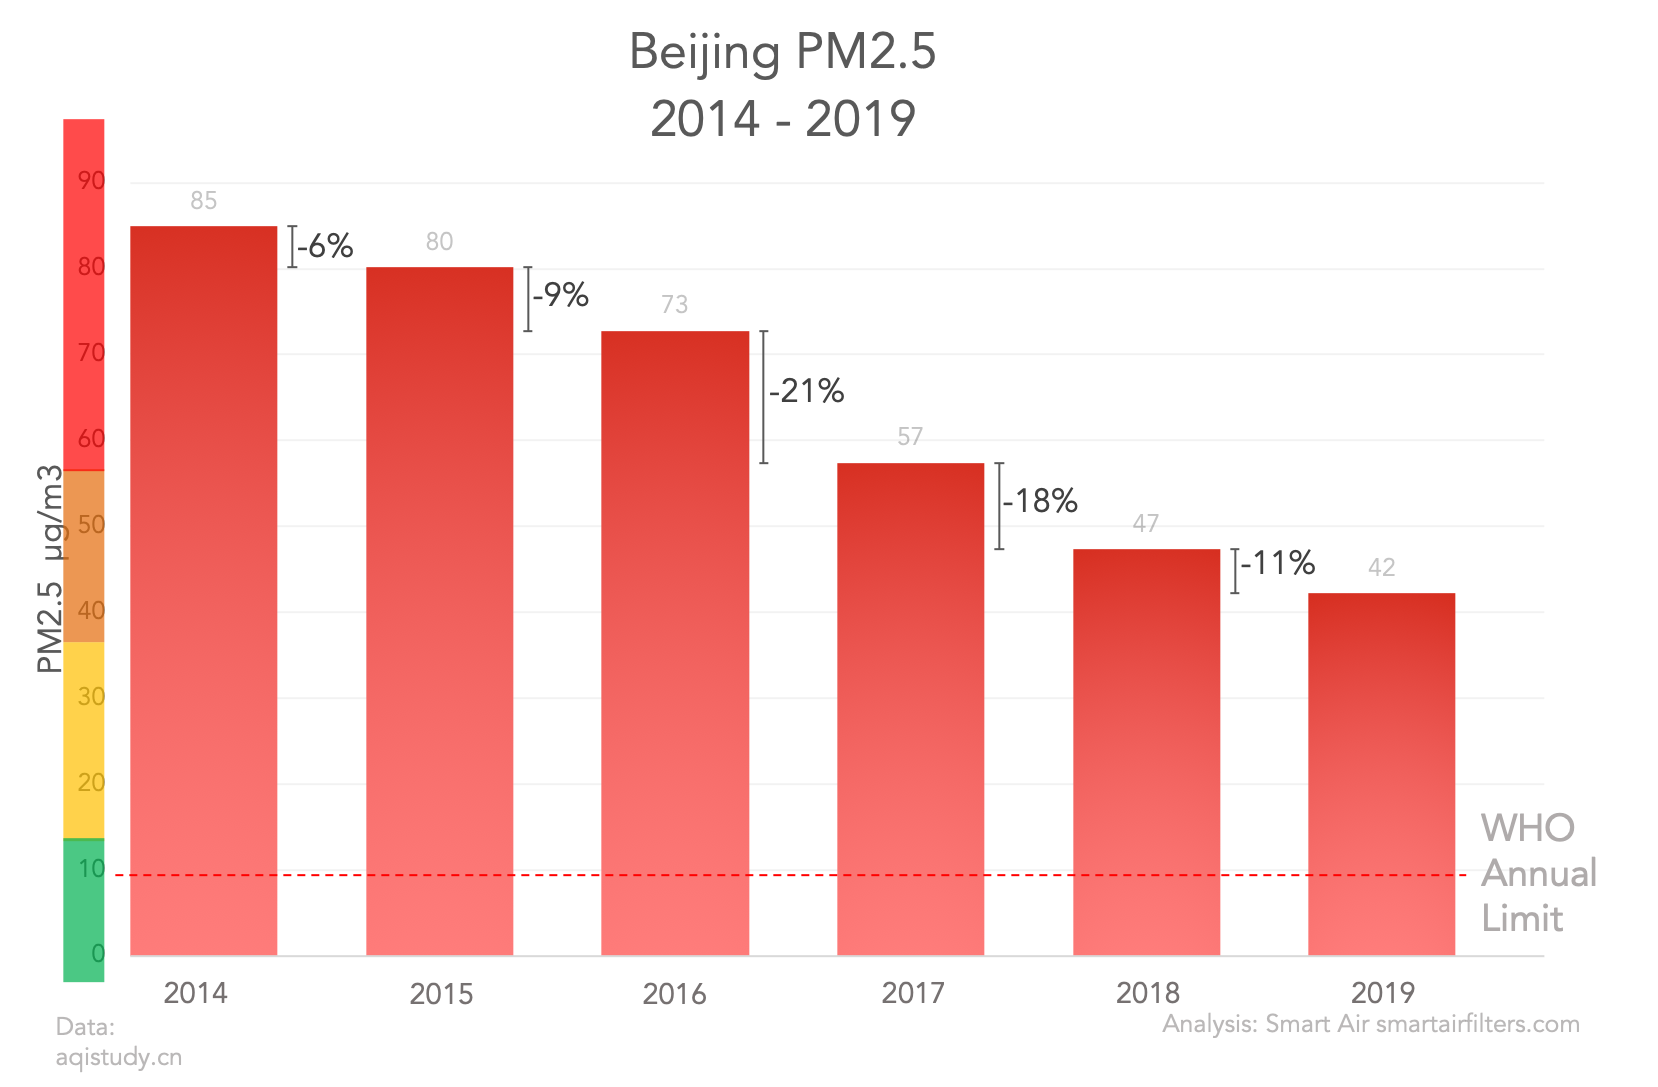 Comparison of air pollution in Beijing in 2014 and 2019